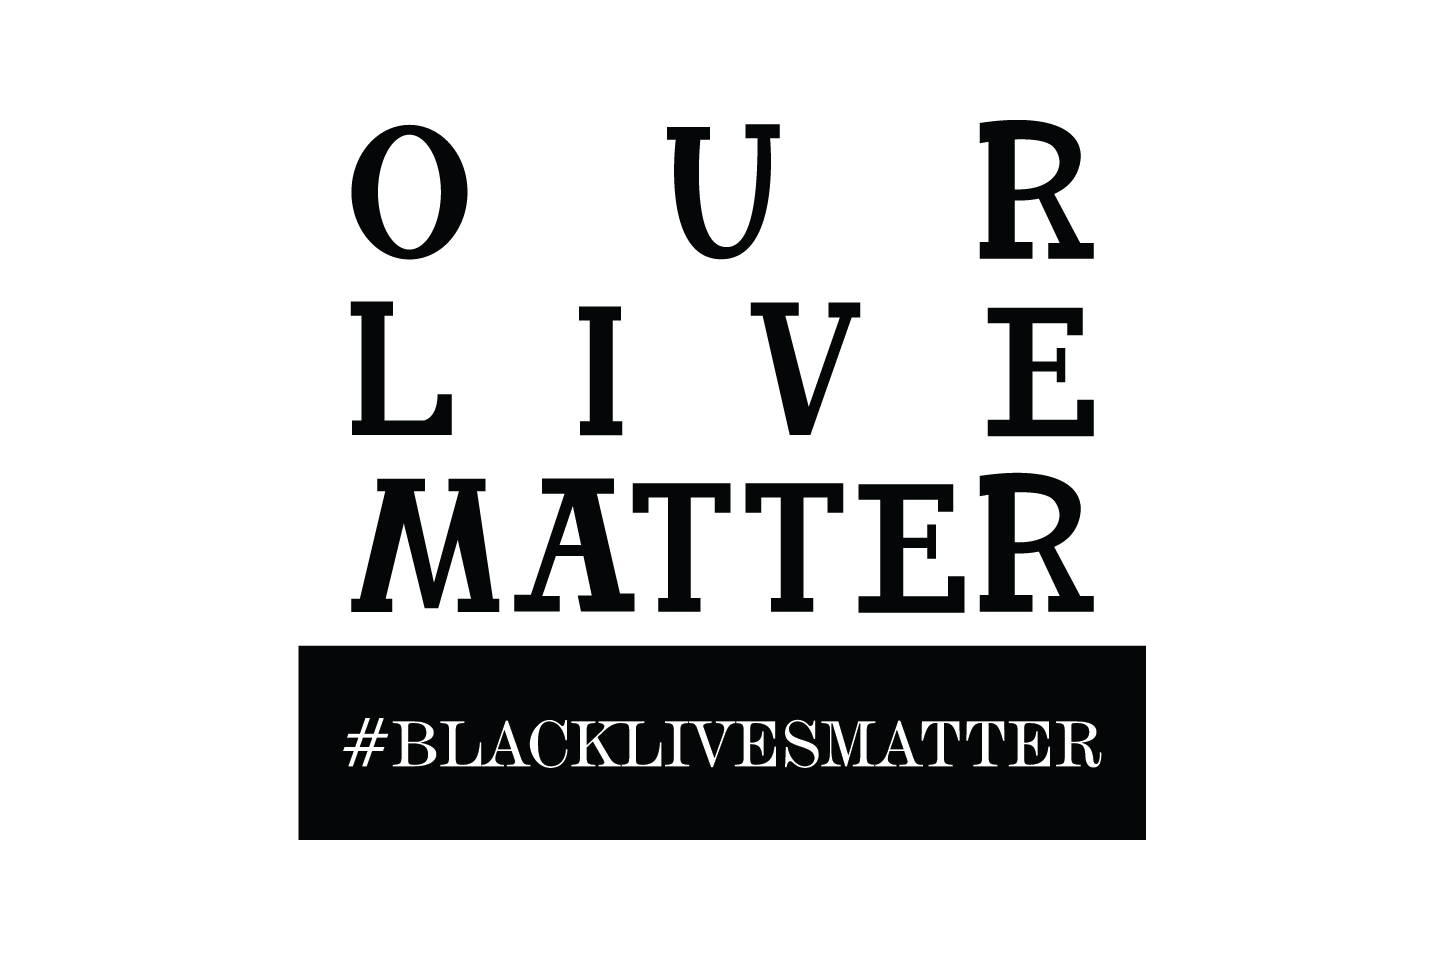 Our Lives Matter Quote Svg Cut Graphic By Yuhana Purwanti Creative Fabrica